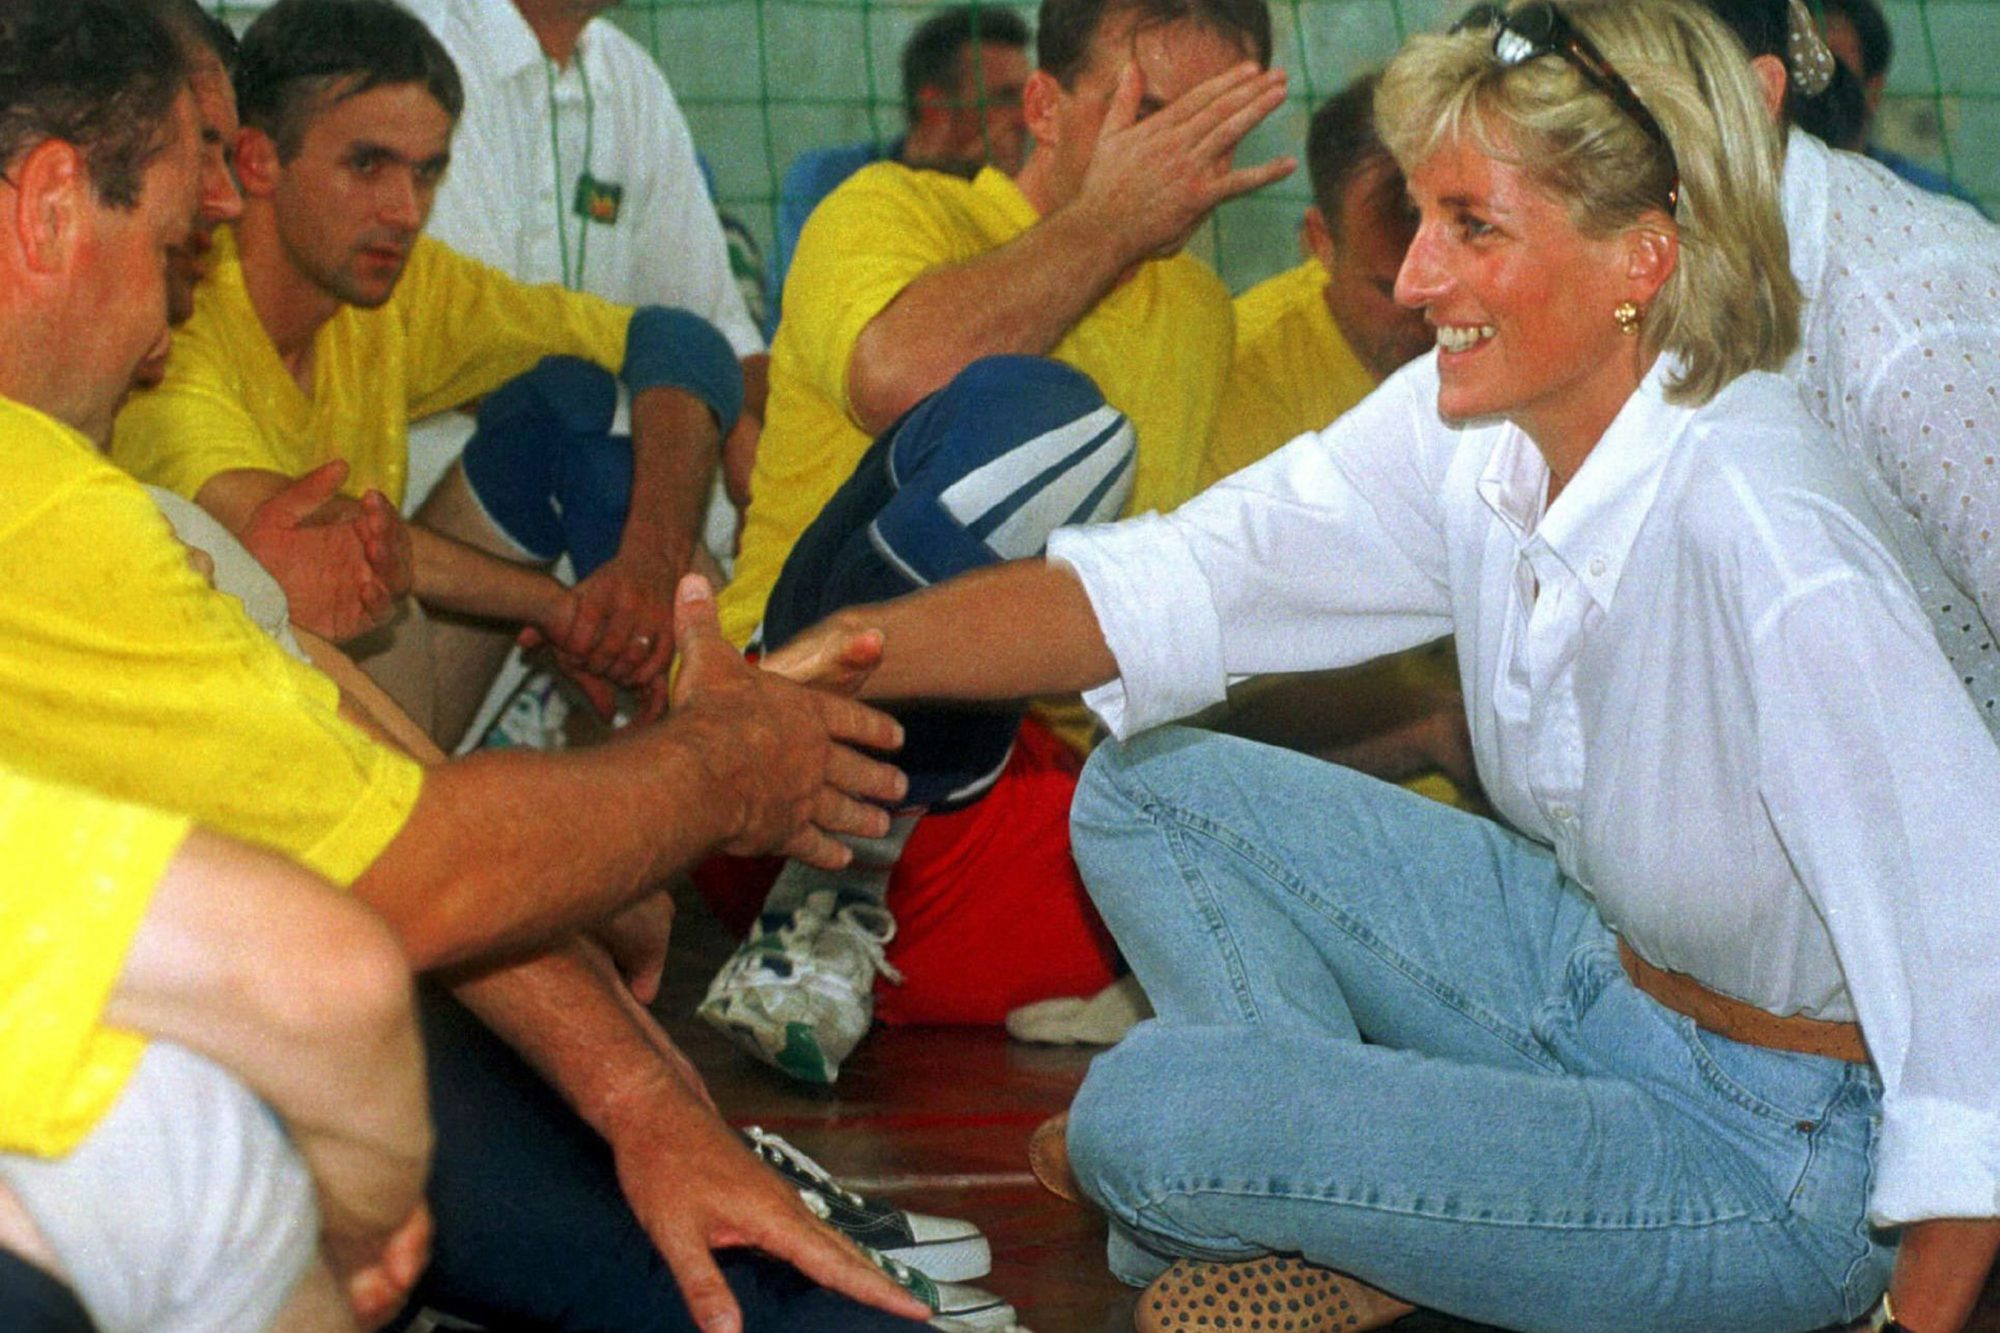 Diana enthusiastically met with locals to hear their stories of pain, loss, and survival